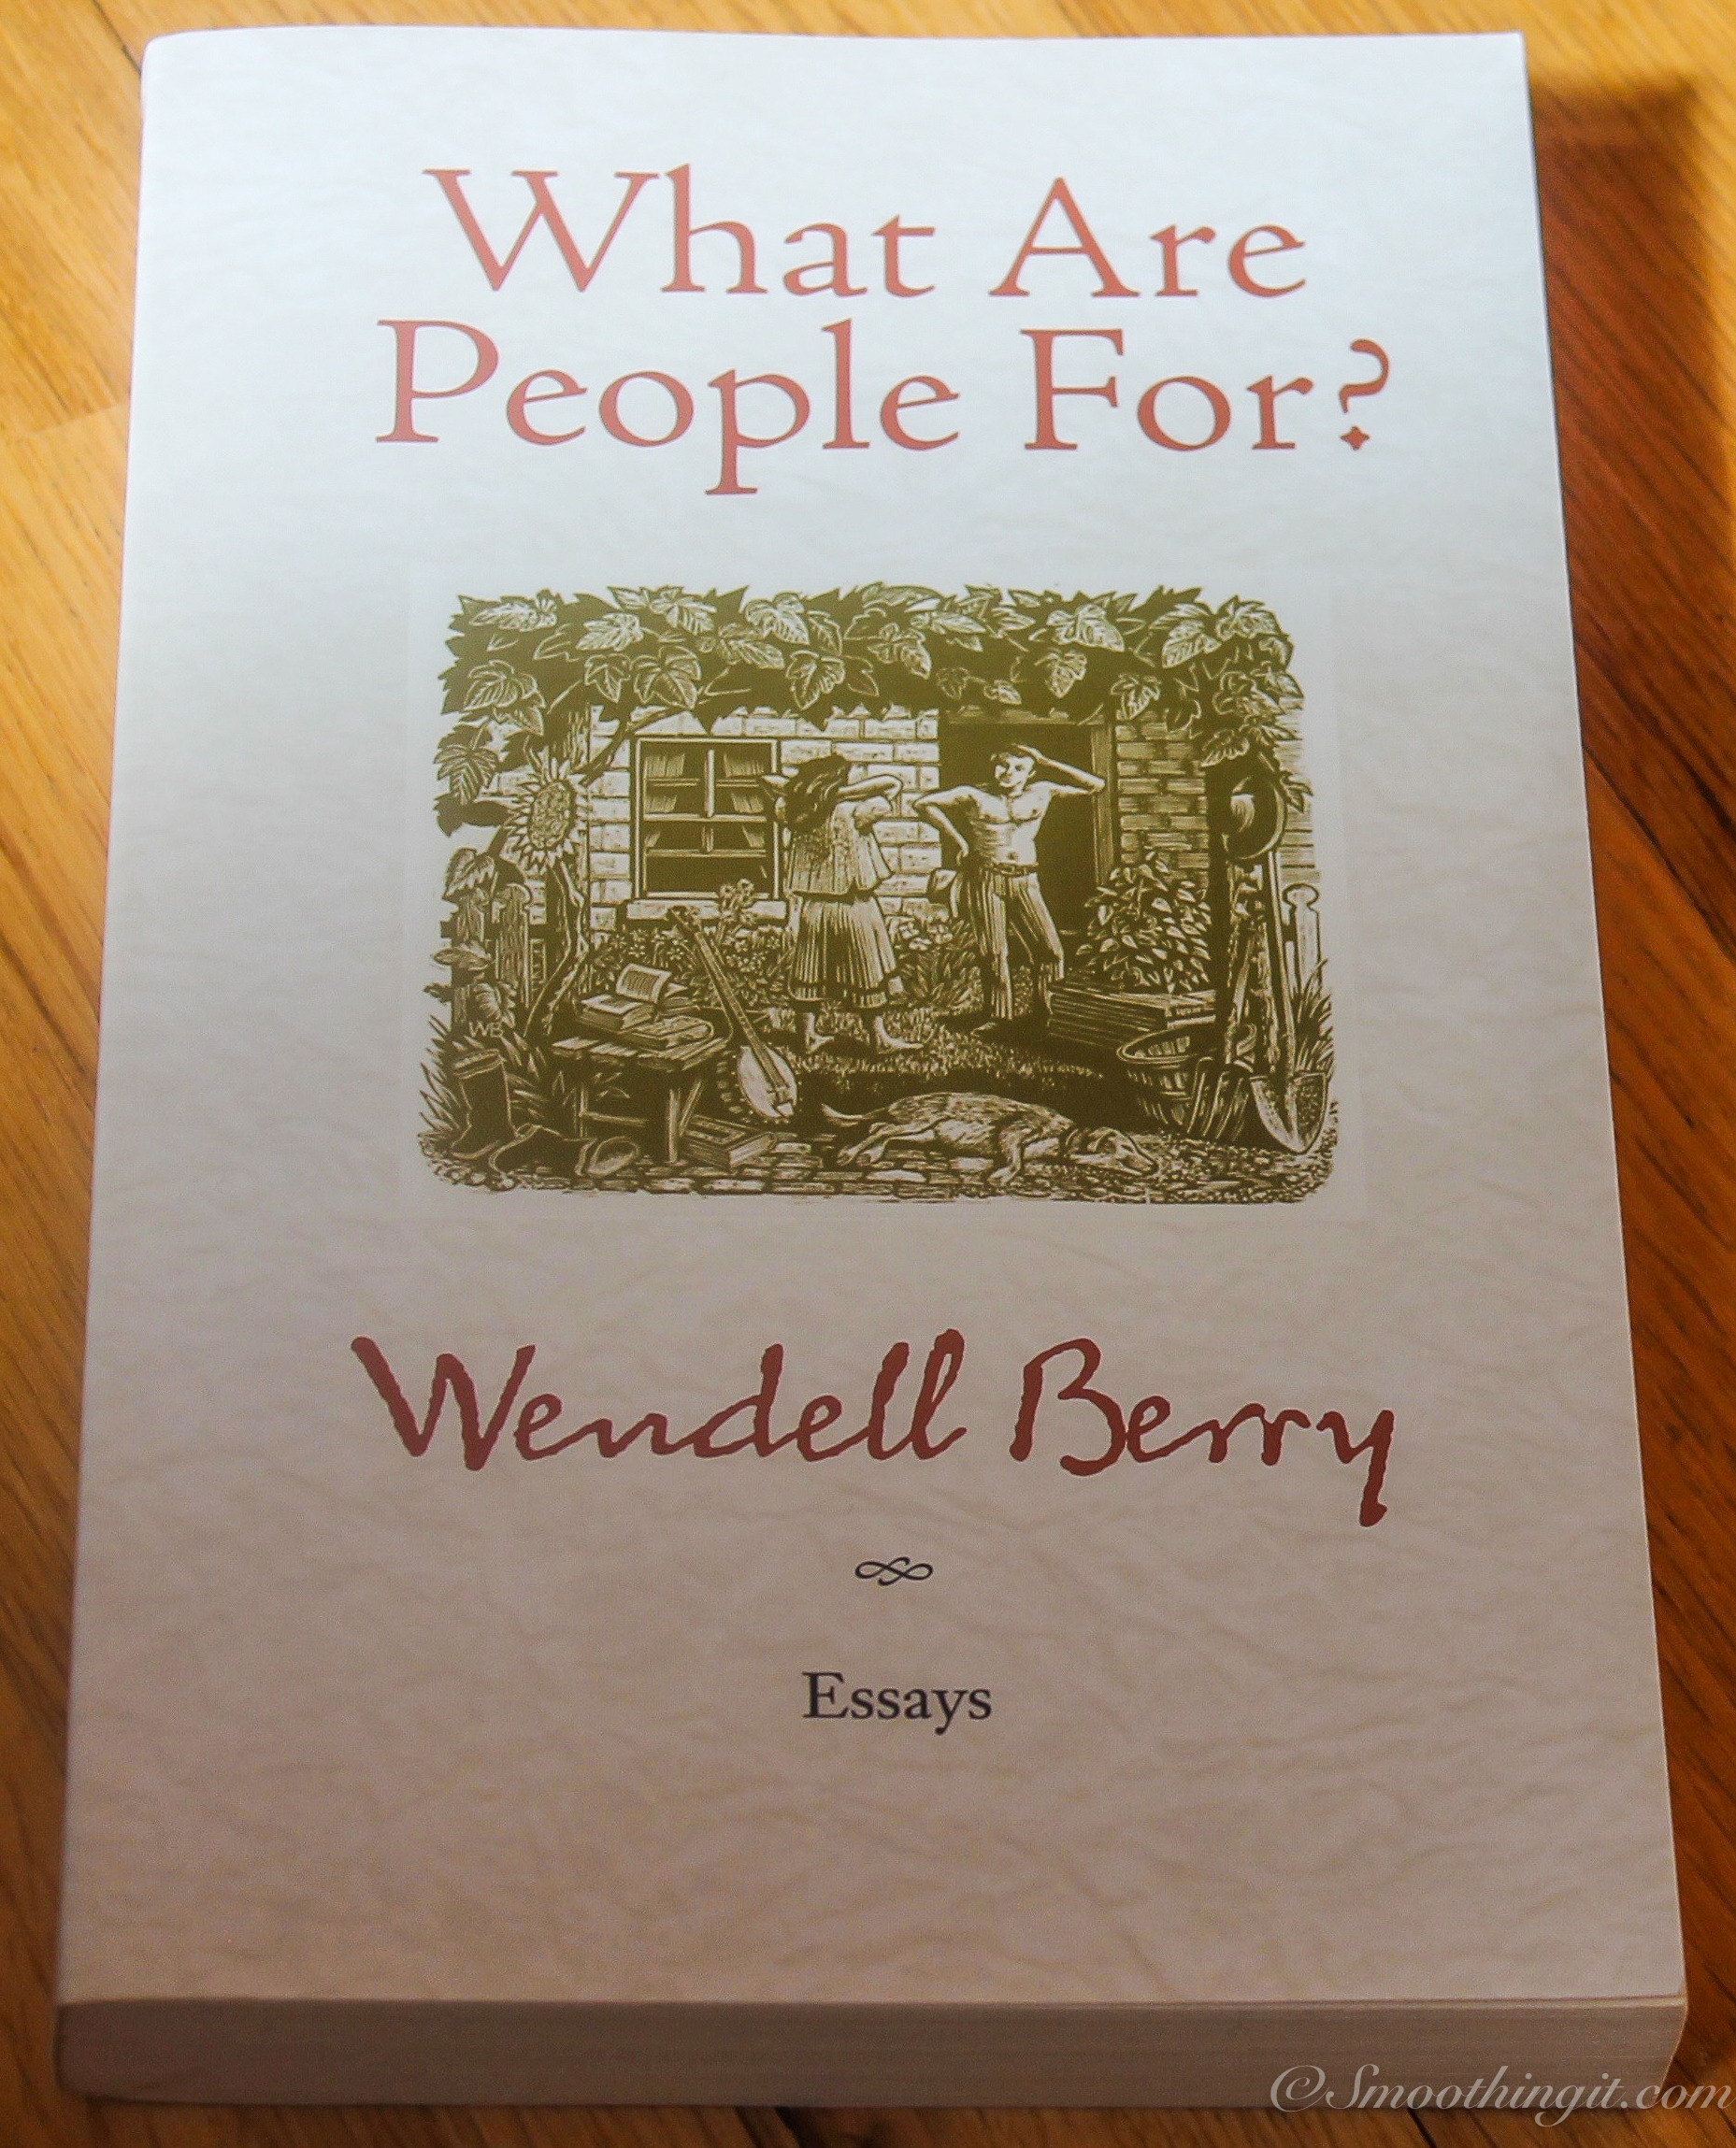 essays by wendell berry online What are people for: essays second edition, - wendell berry identifies himself as both a farmer of sorts and an artist of sorts, which he deftly illustrates in the scope of these 22 essays.